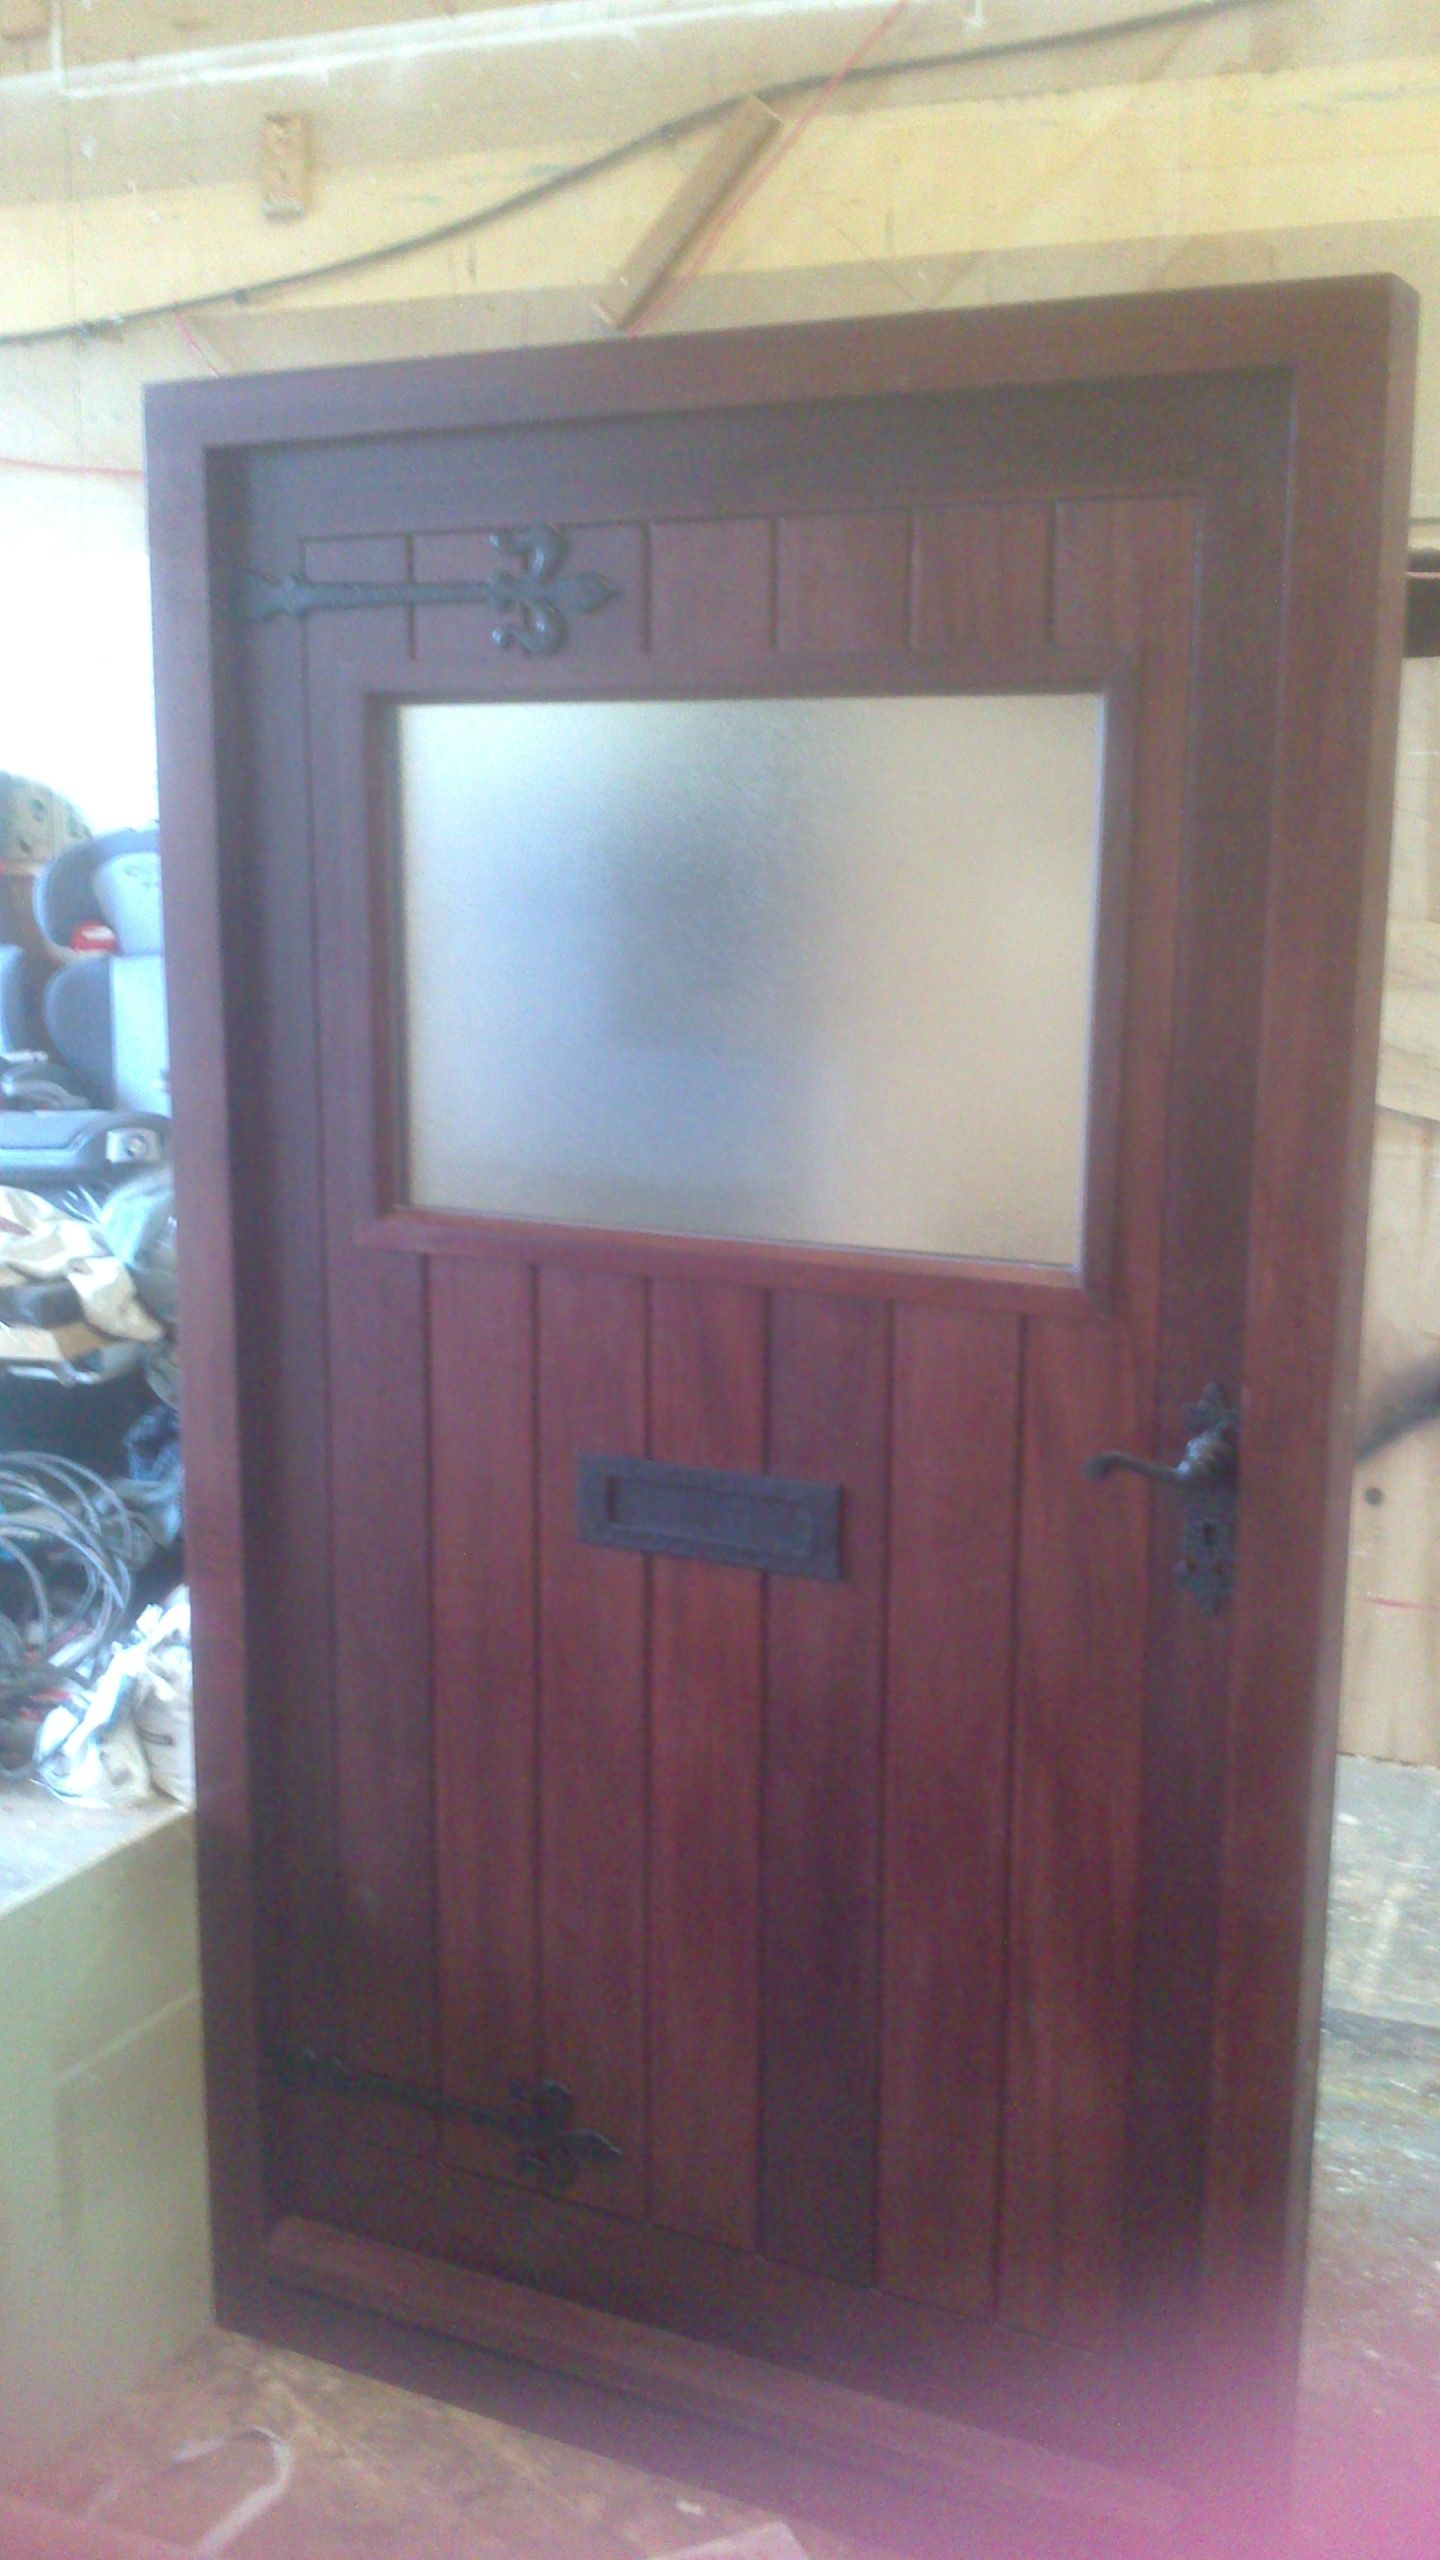 Sapele Door With Extra Large Obscured Glass Viewing Panel Finished With Sikkens